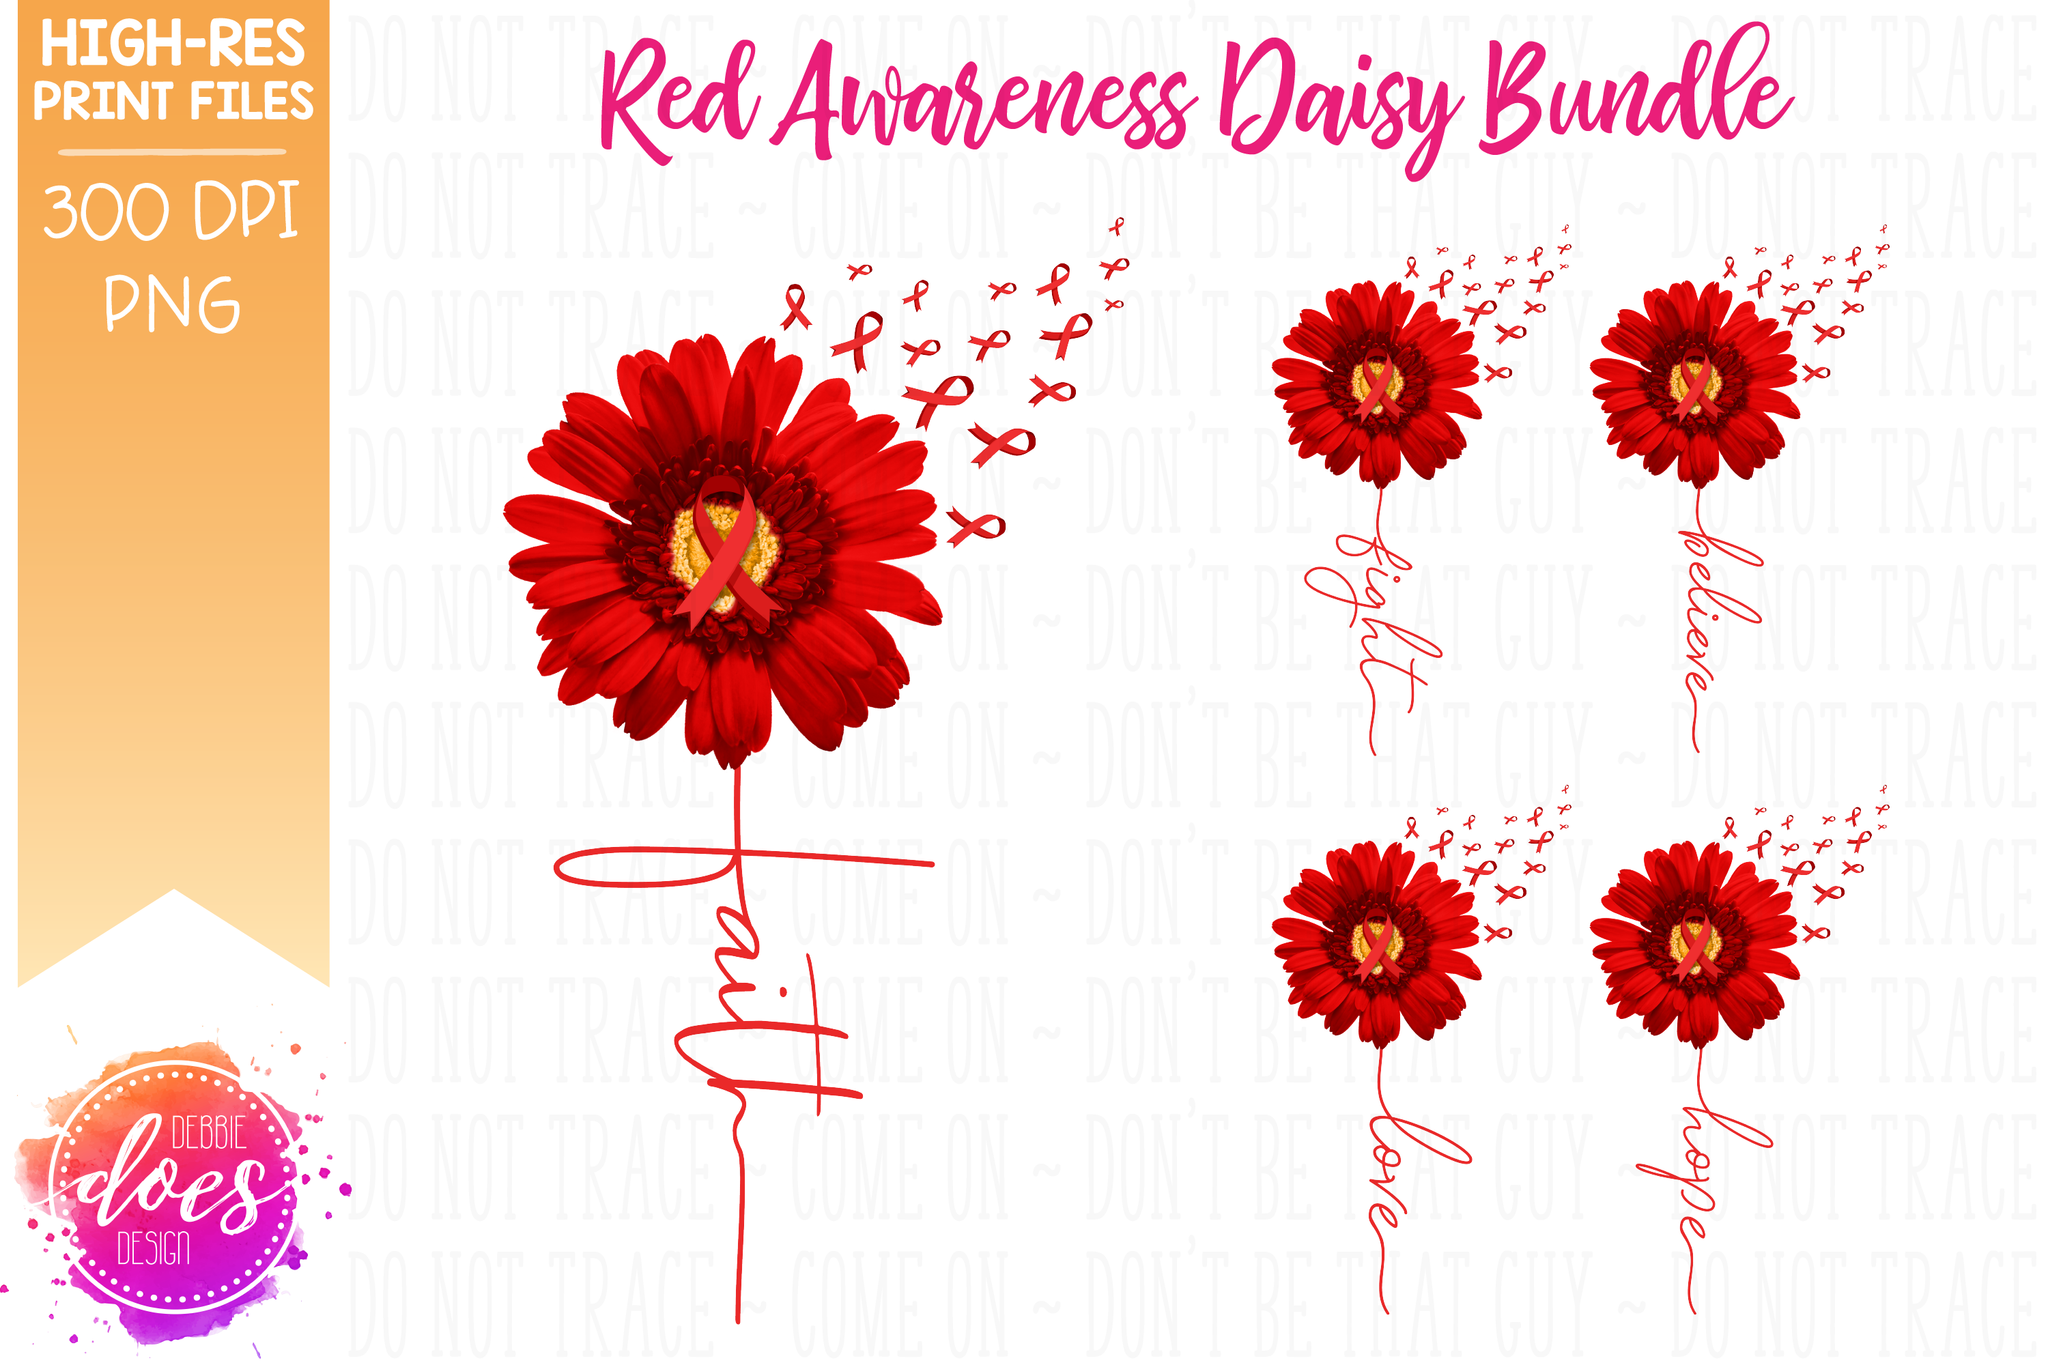 Red Awareness Daisy Bundle - Includes 5 Designs! - Printable/Sublimation File